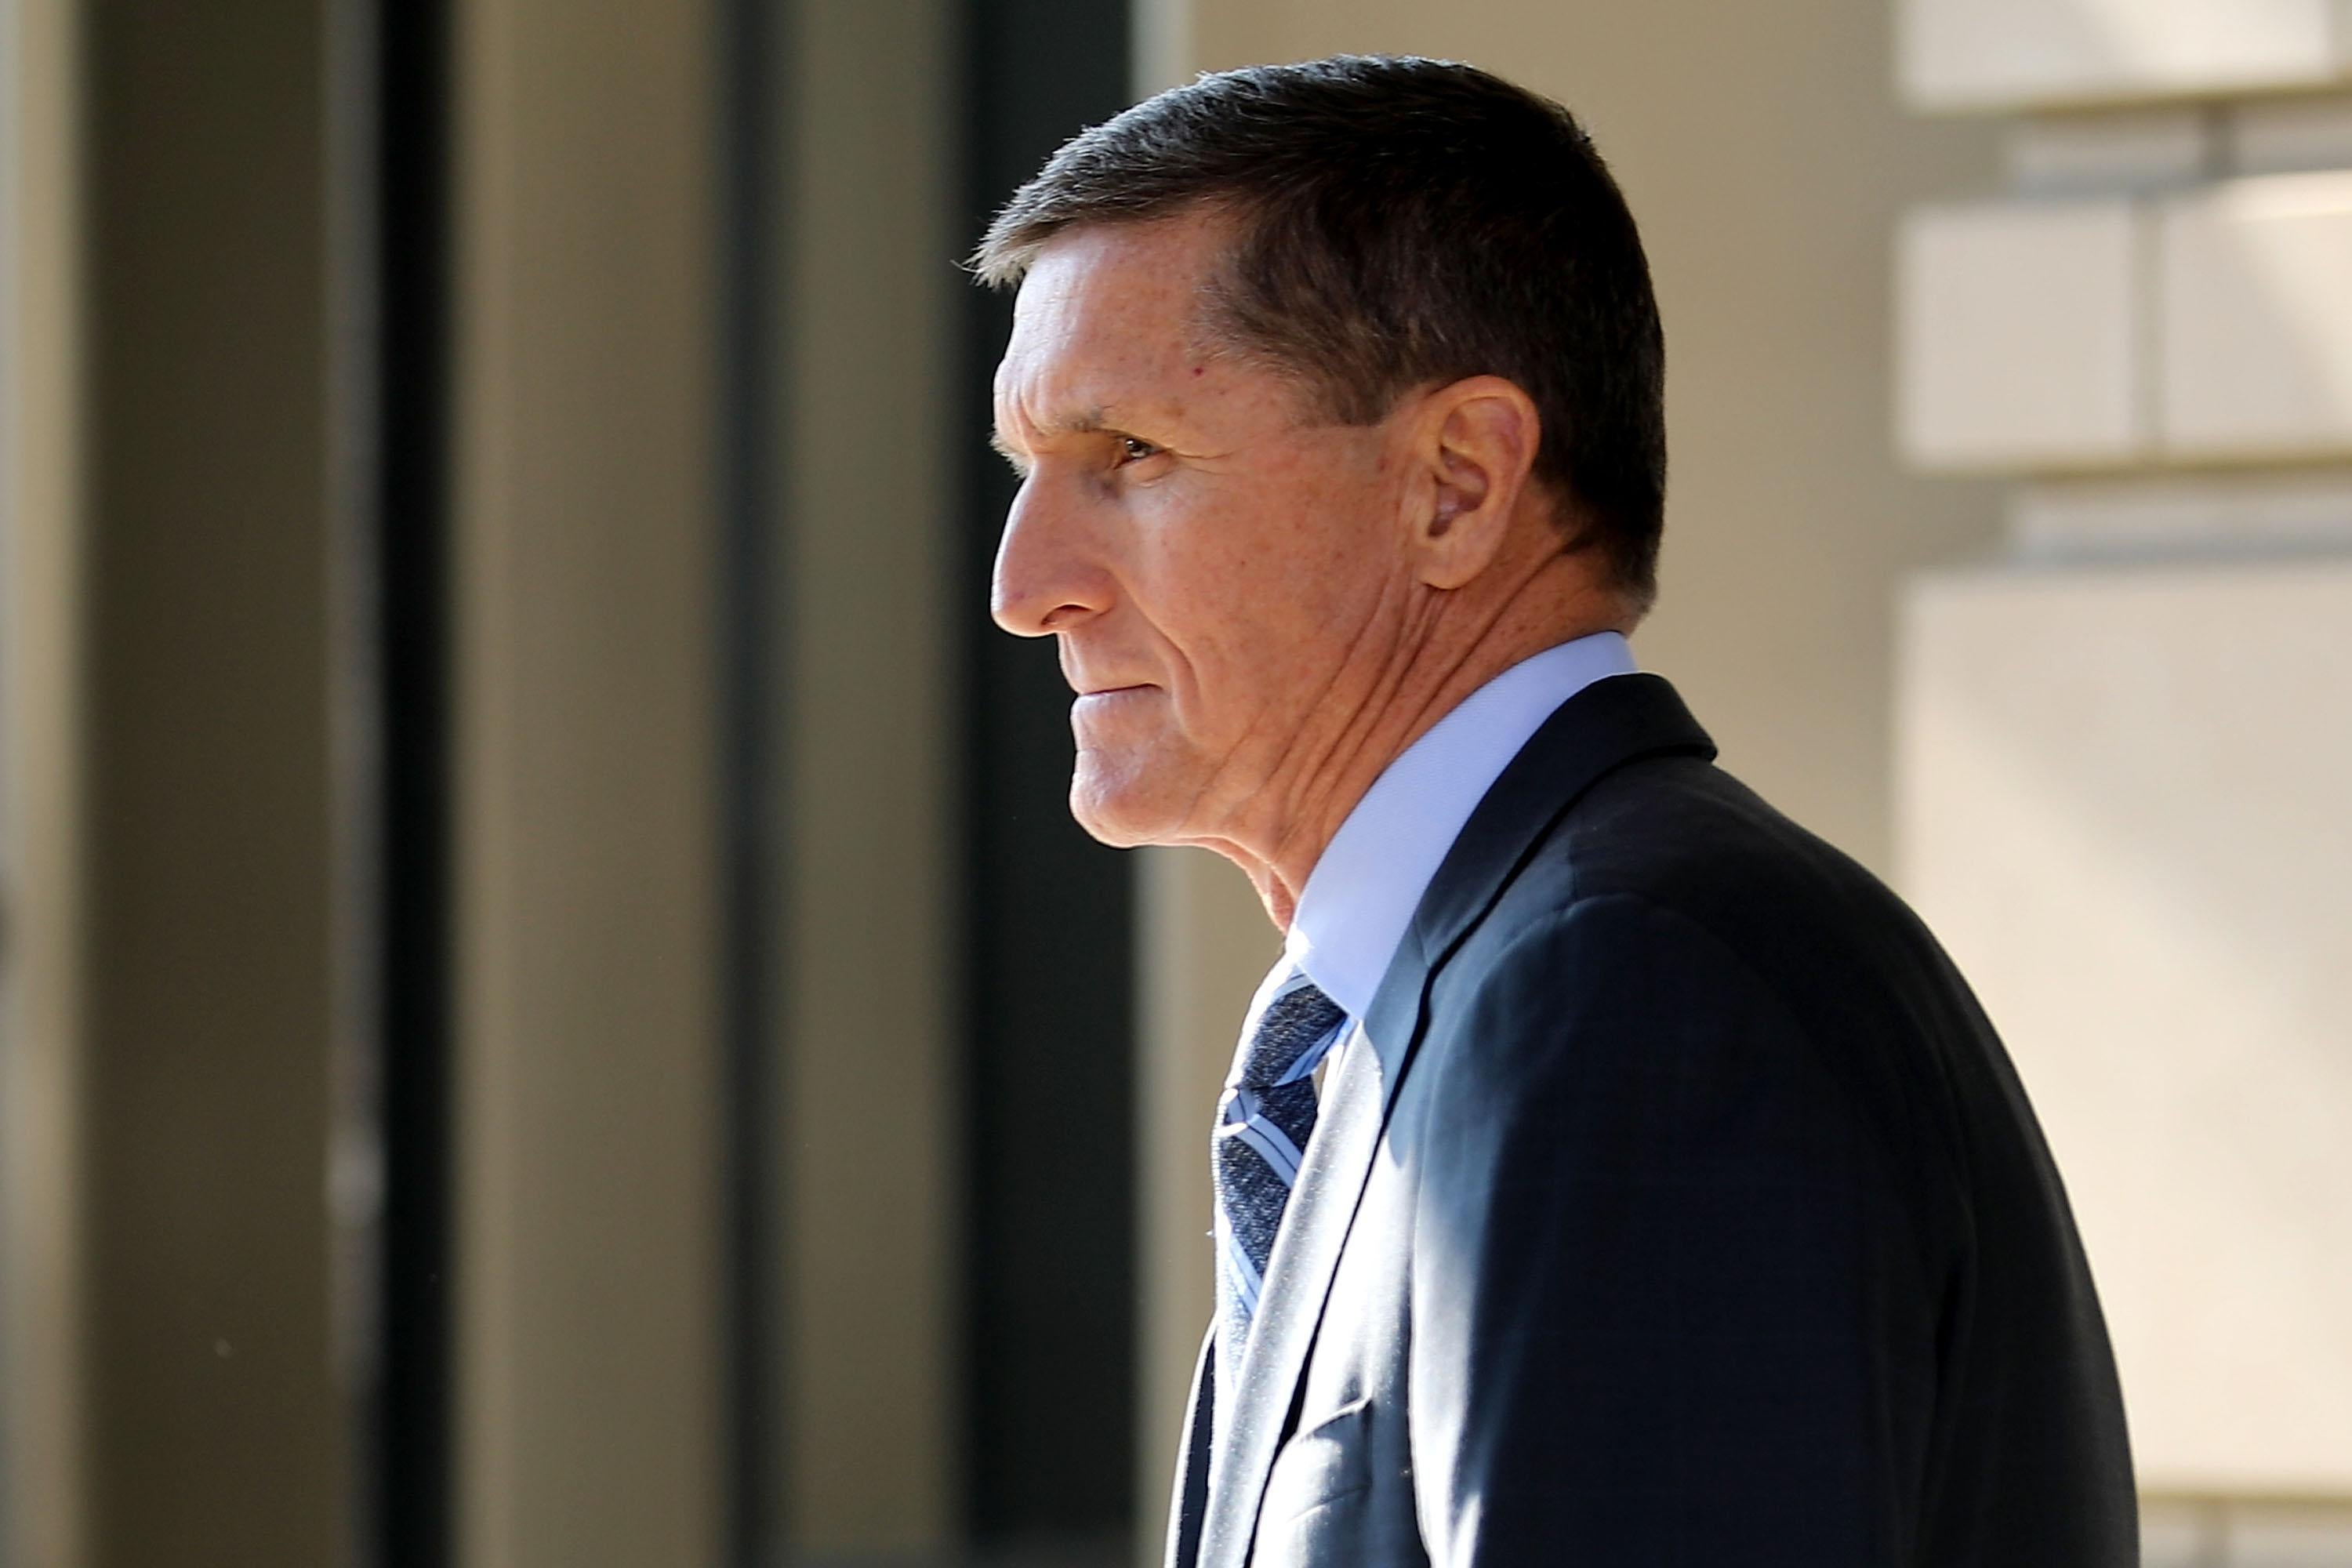 Michael Flynn, viewed in profile.